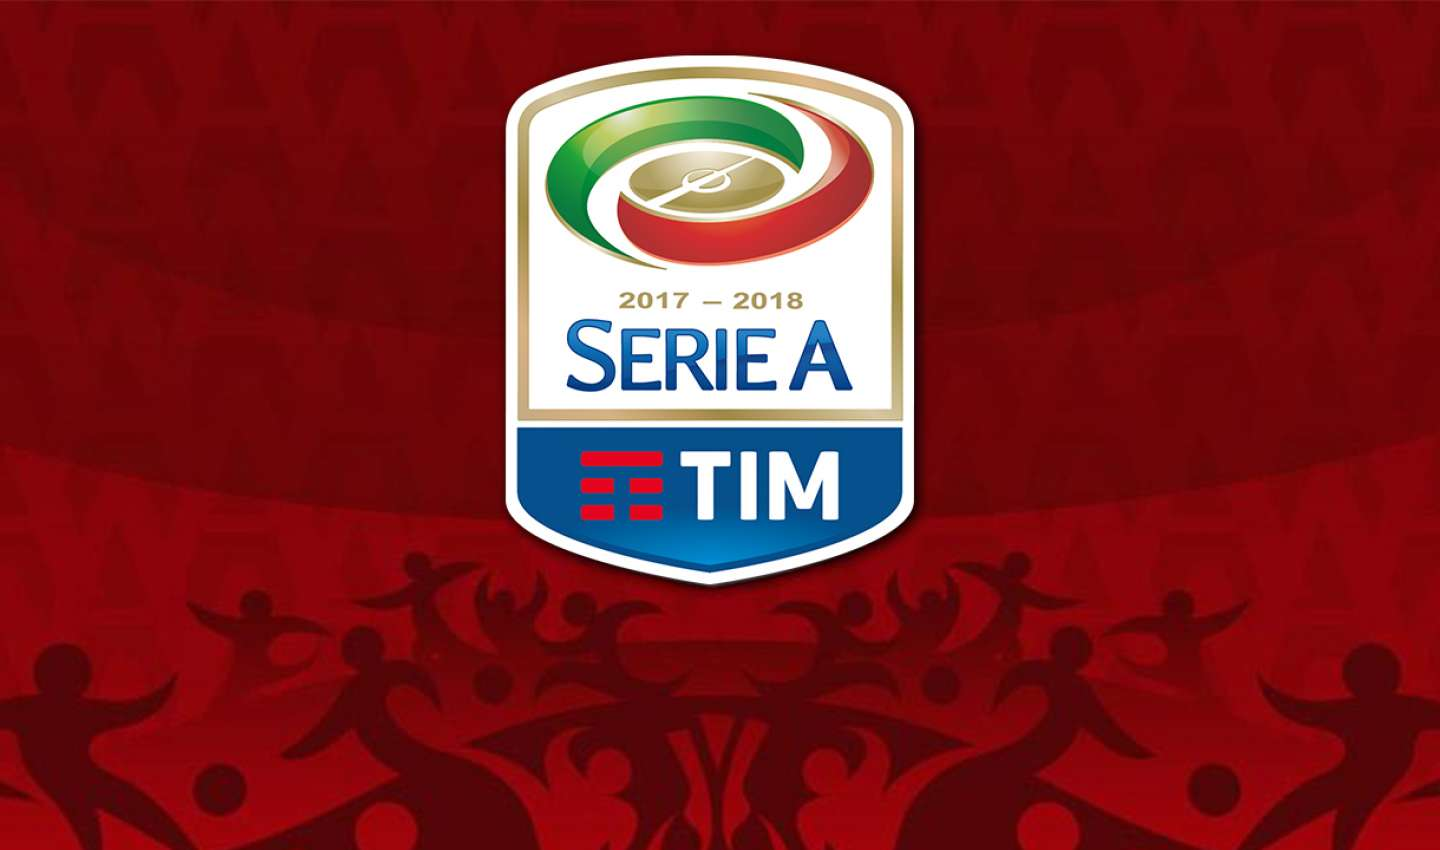 Serie A: Serie A 2017/18 Fixtures: All AC Milan Matches